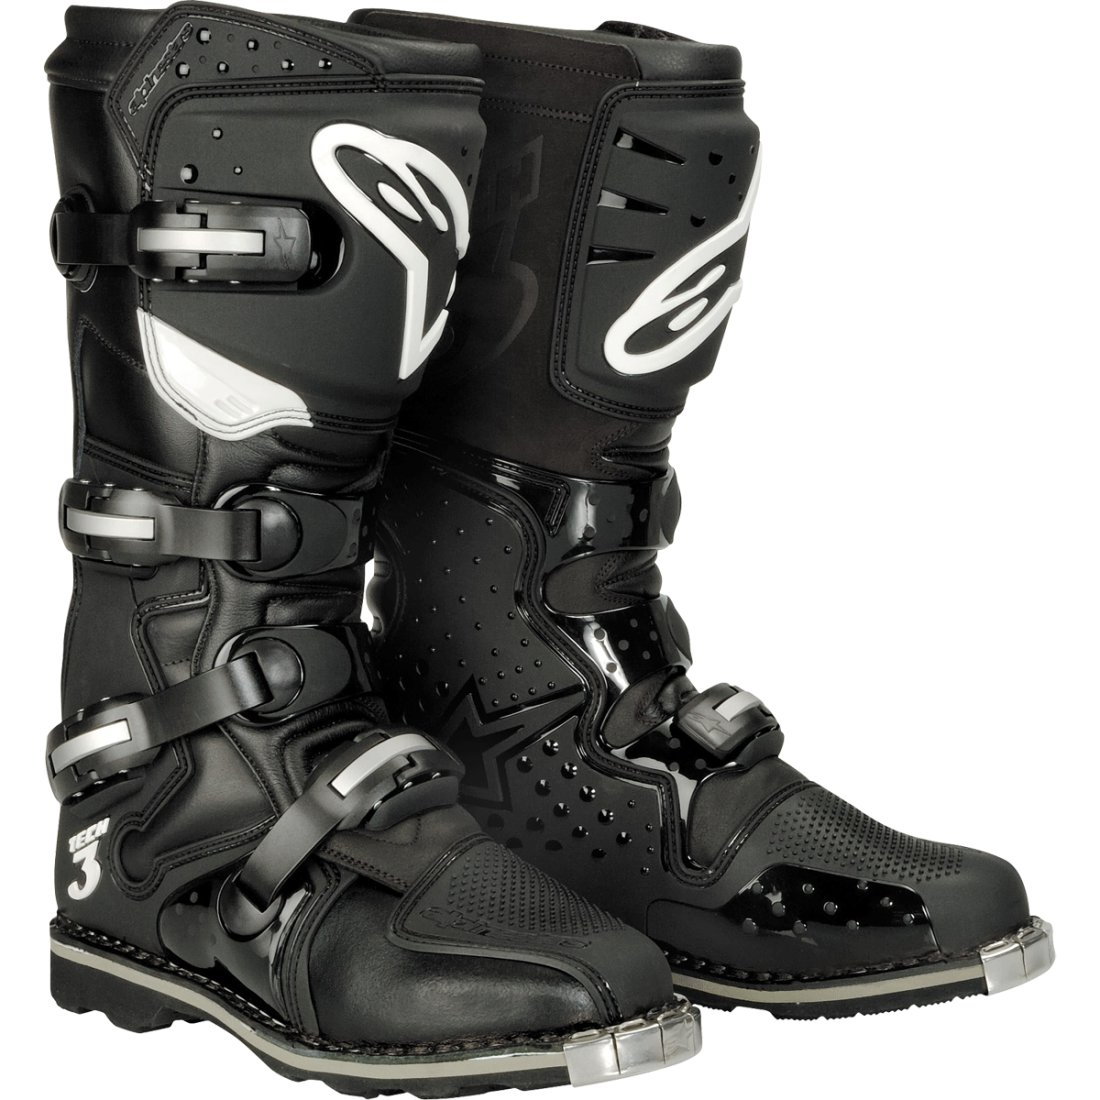 bottes alpinestars tech 3 all terrain n motocard. Black Bedroom Furniture Sets. Home Design Ideas